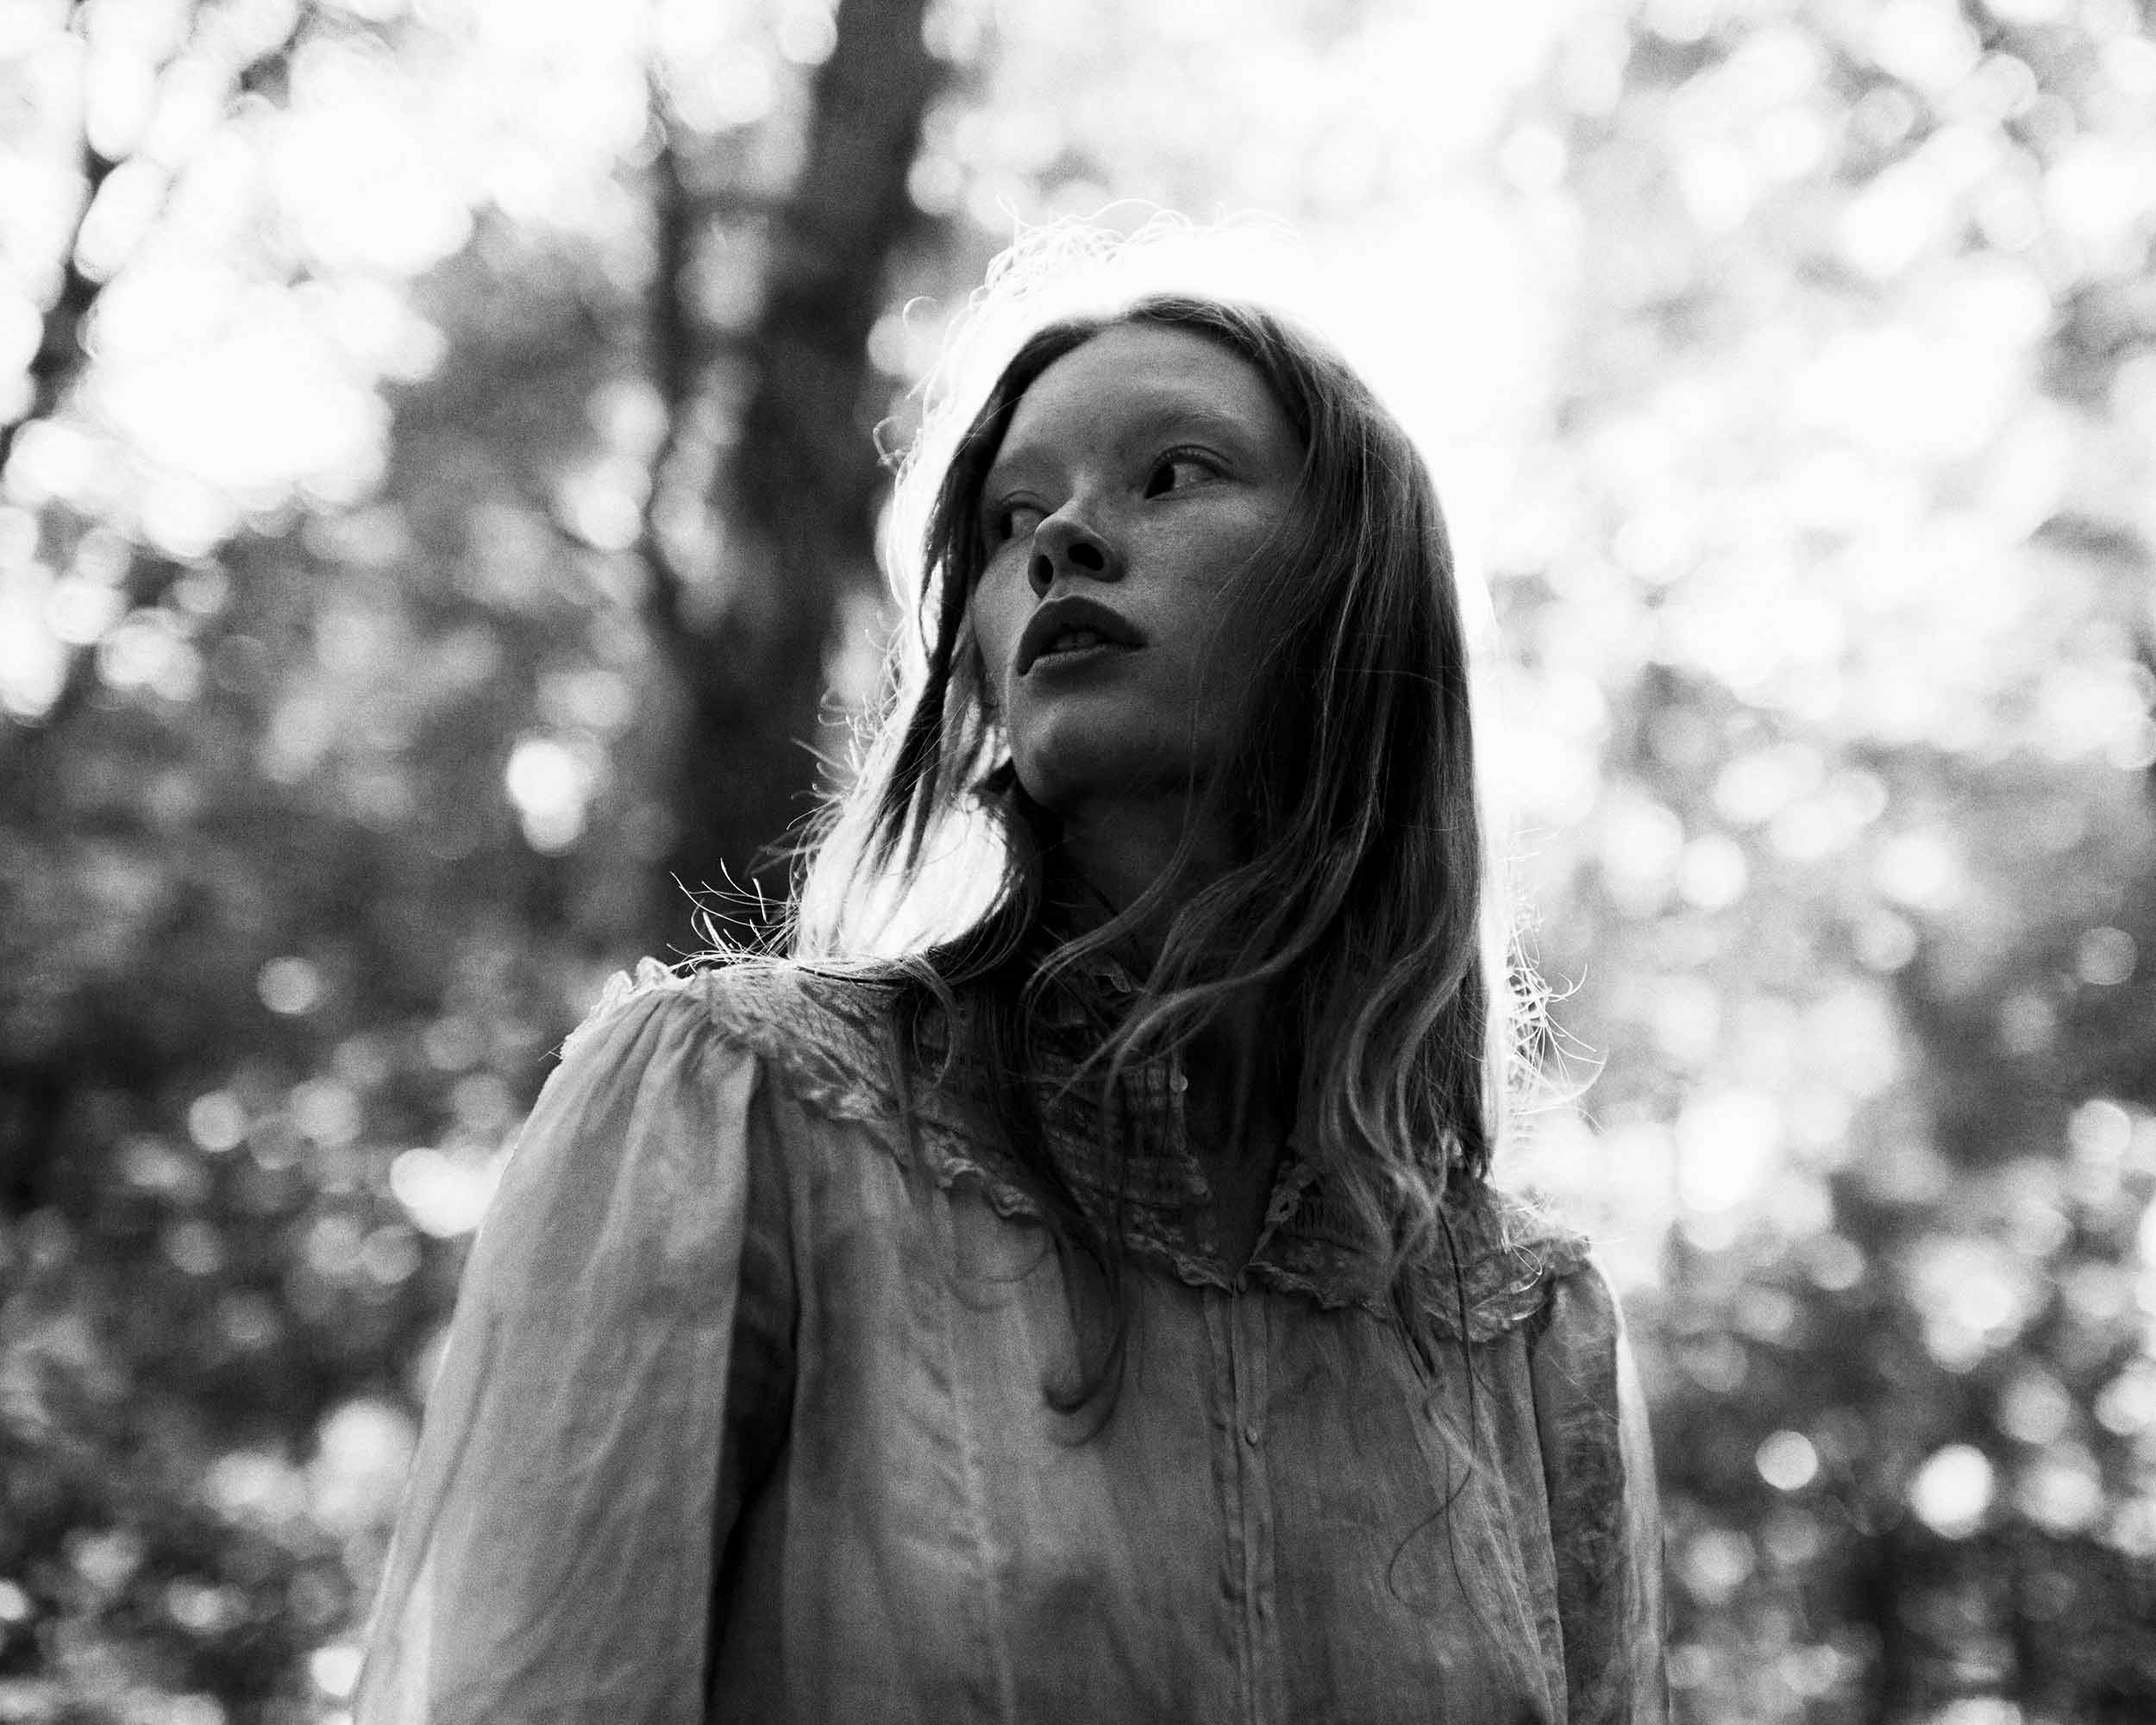 Artist Danny Roberts Photo of Julia Hafstrom in forest